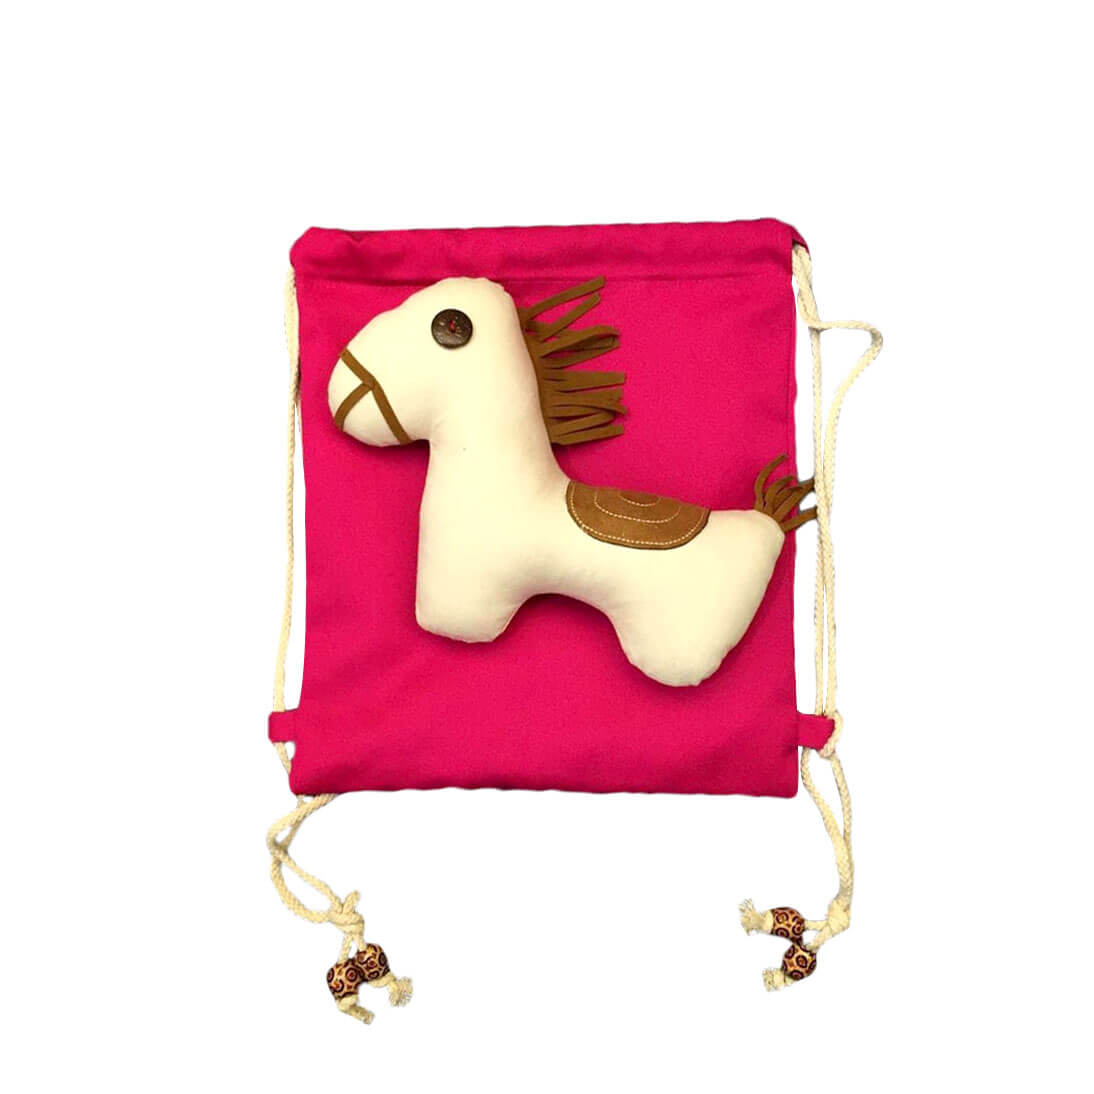 My Sweet Little Pony Backpack in Hot Pink